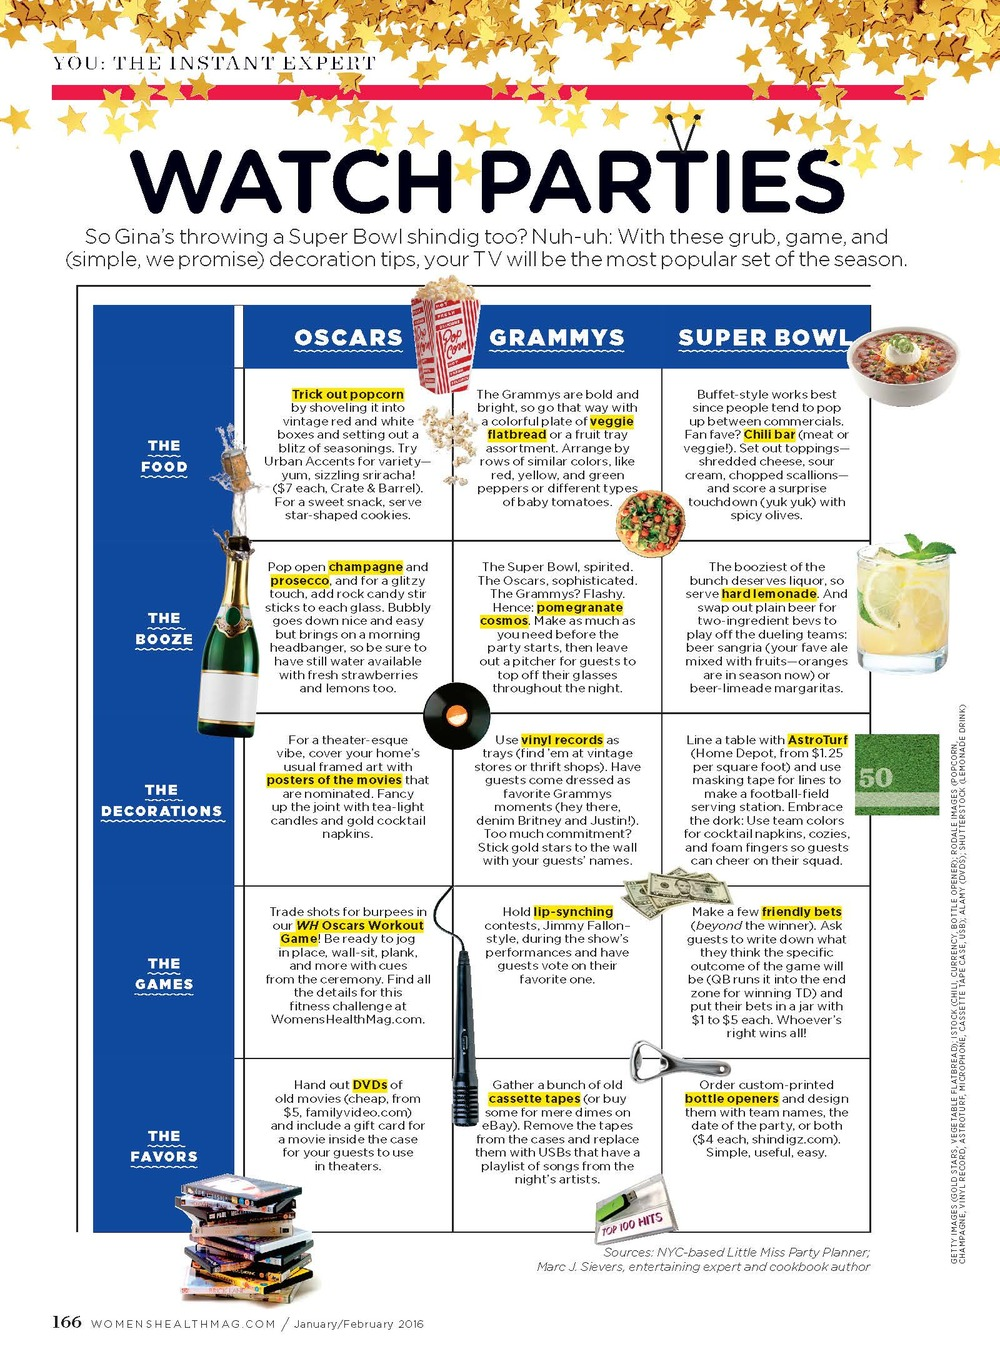 Women's Health - Watch Parties